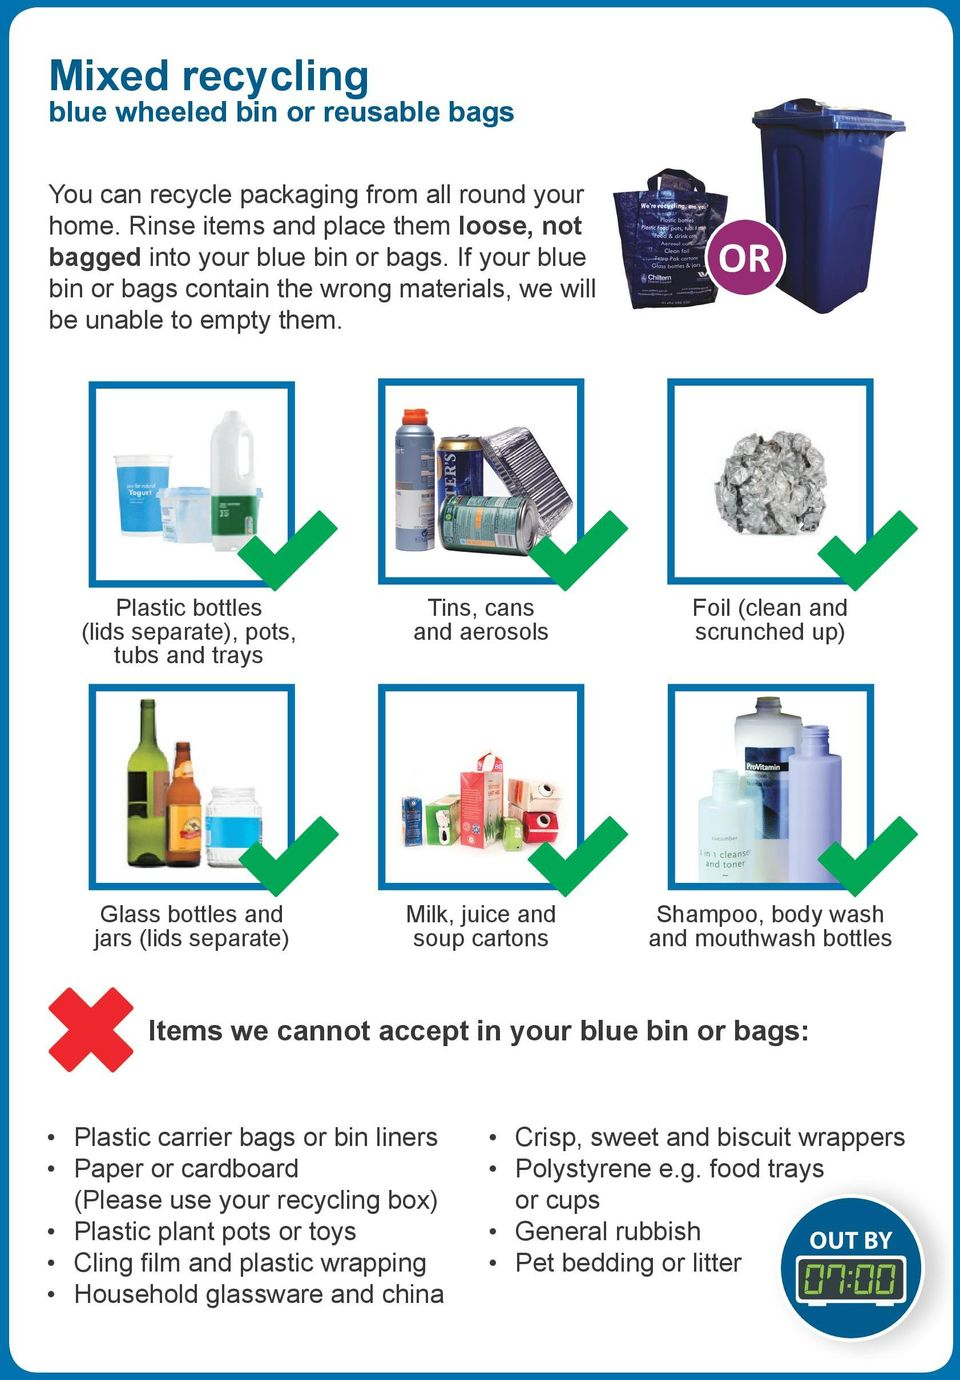 Plastic bottles (lids separate), pots, tubs and trays Tins, cans and aerosols Foil (clean and scrunched up) Glass bottles and jars (lids separate) Milk, juice and soup cartons Shampoo, body wash and